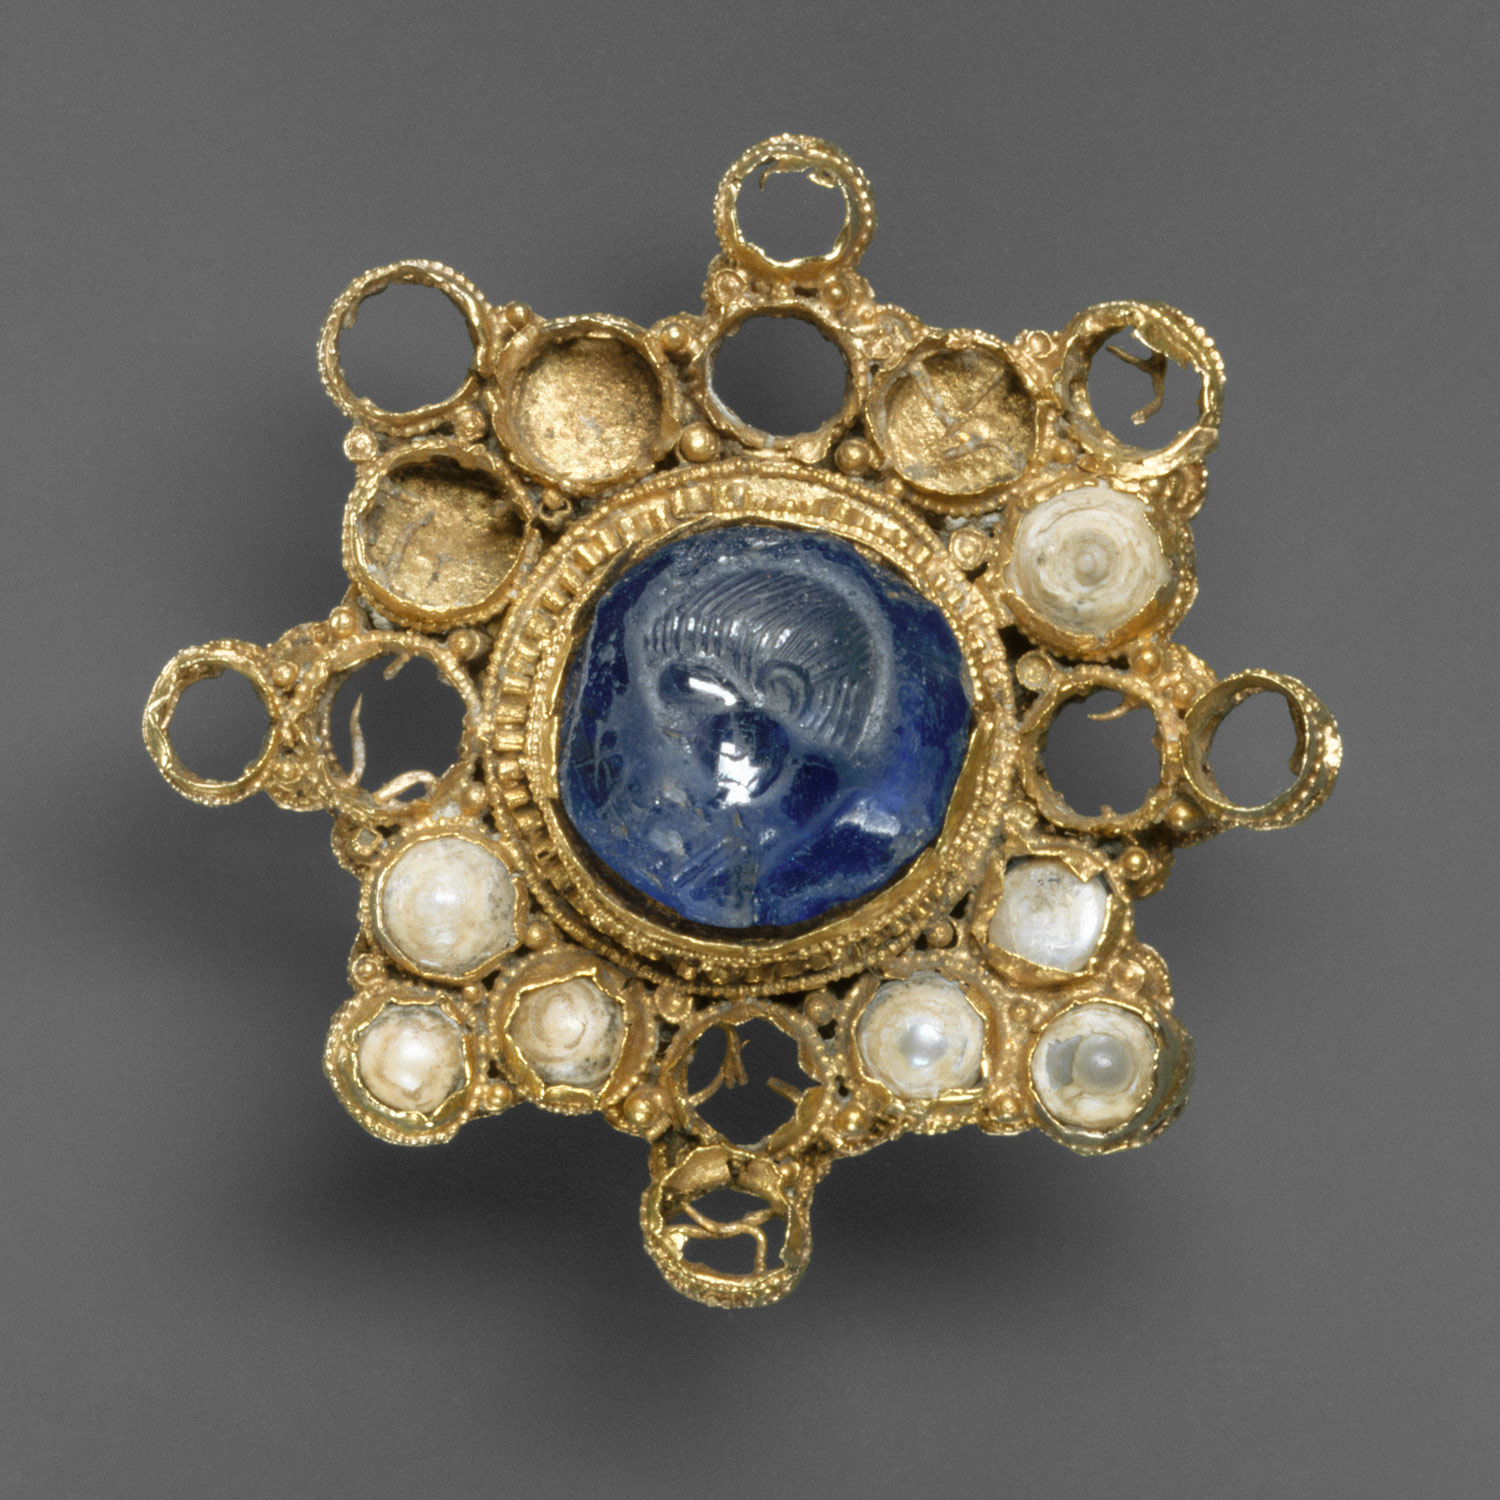 Star-Shaped Brooch with Intaglio